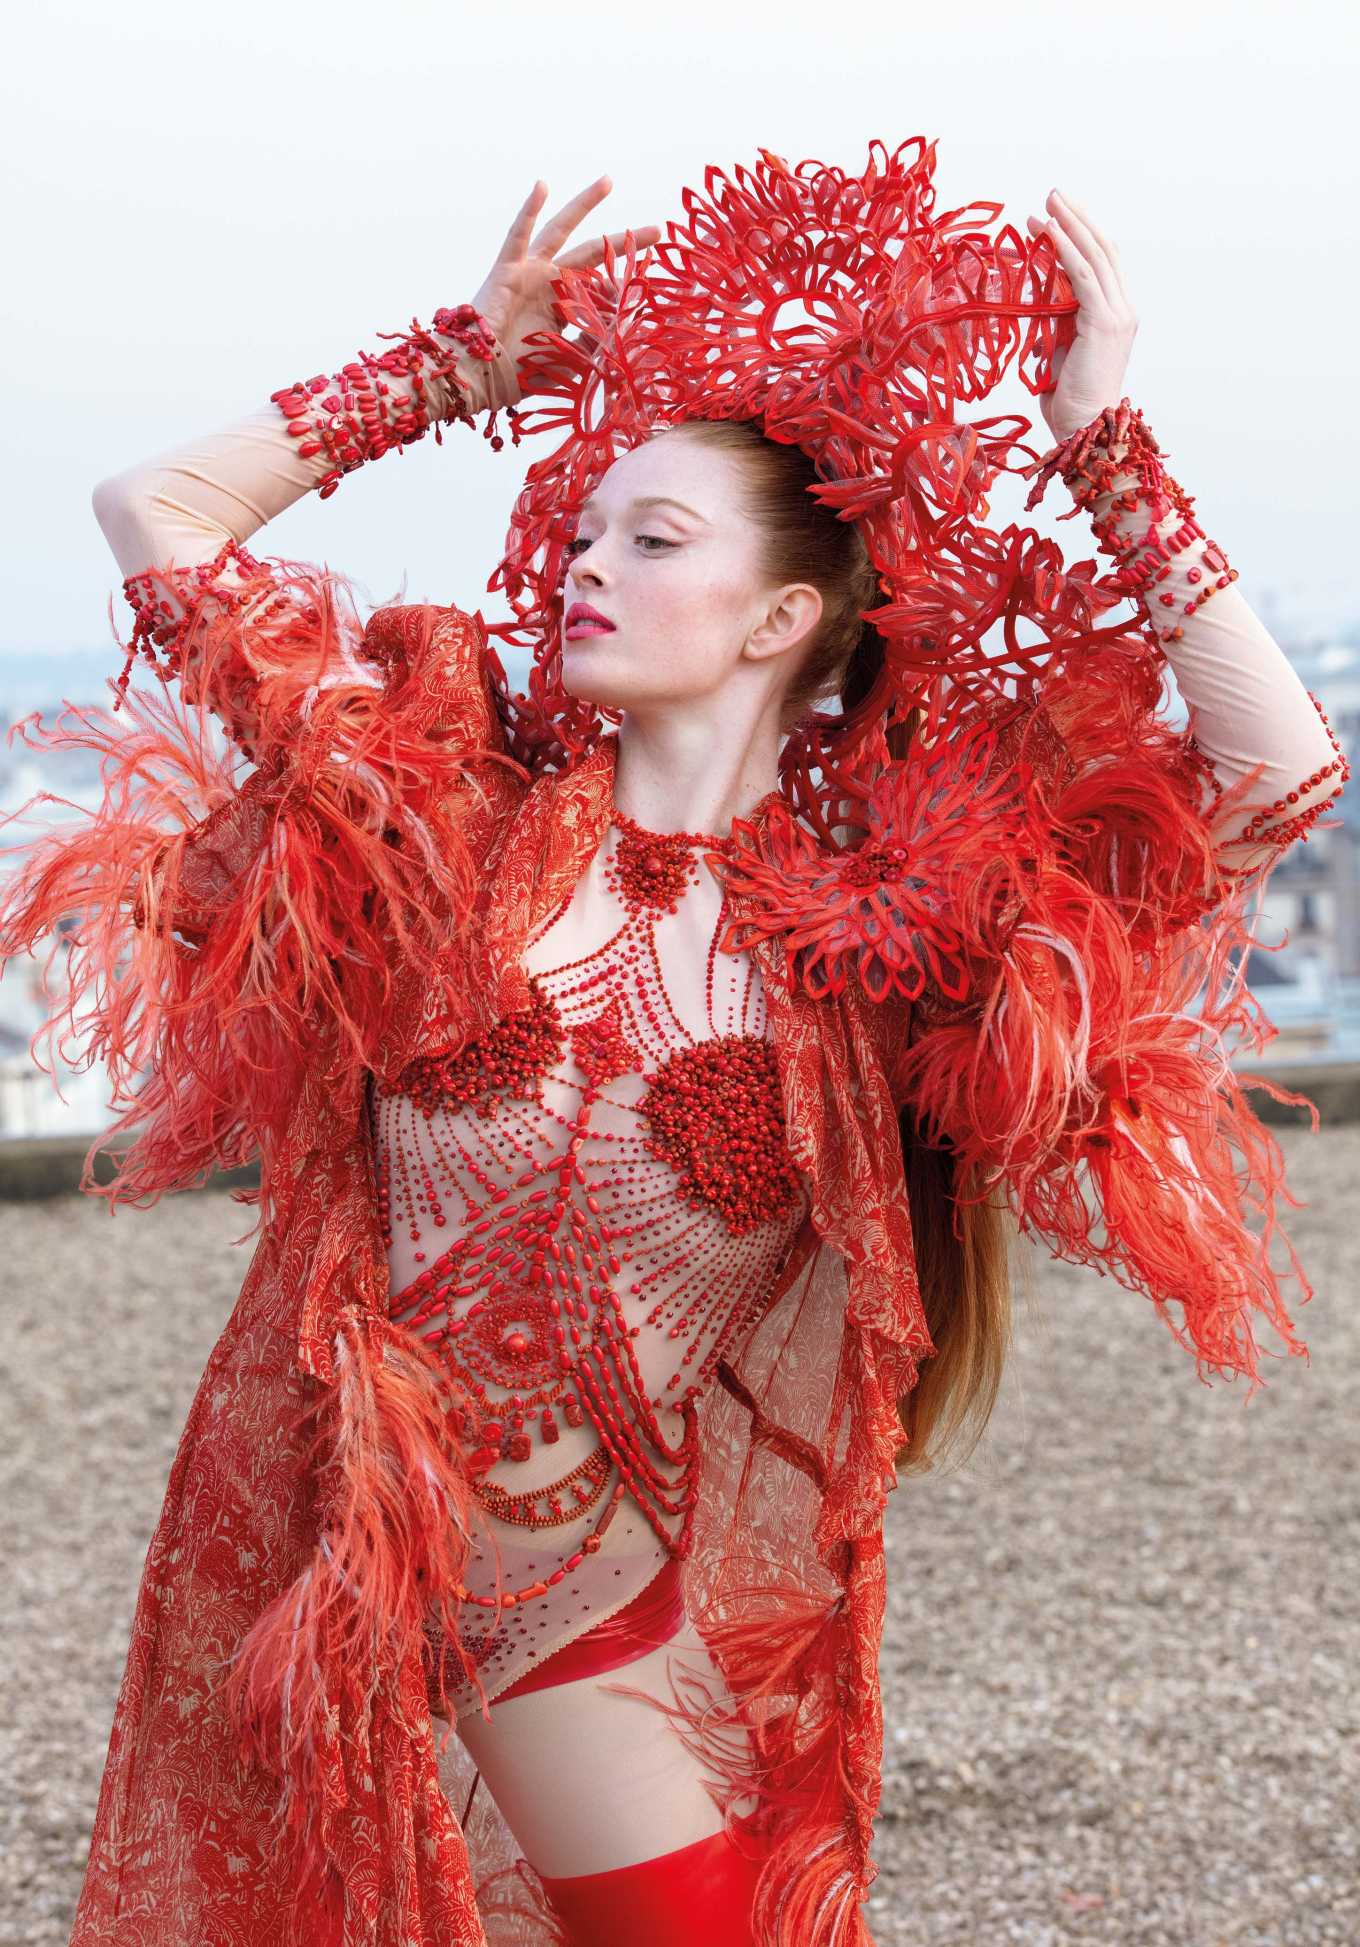 Larsen Thompson Photoshoot for L'Officiel Italy Magazine (March 2020)